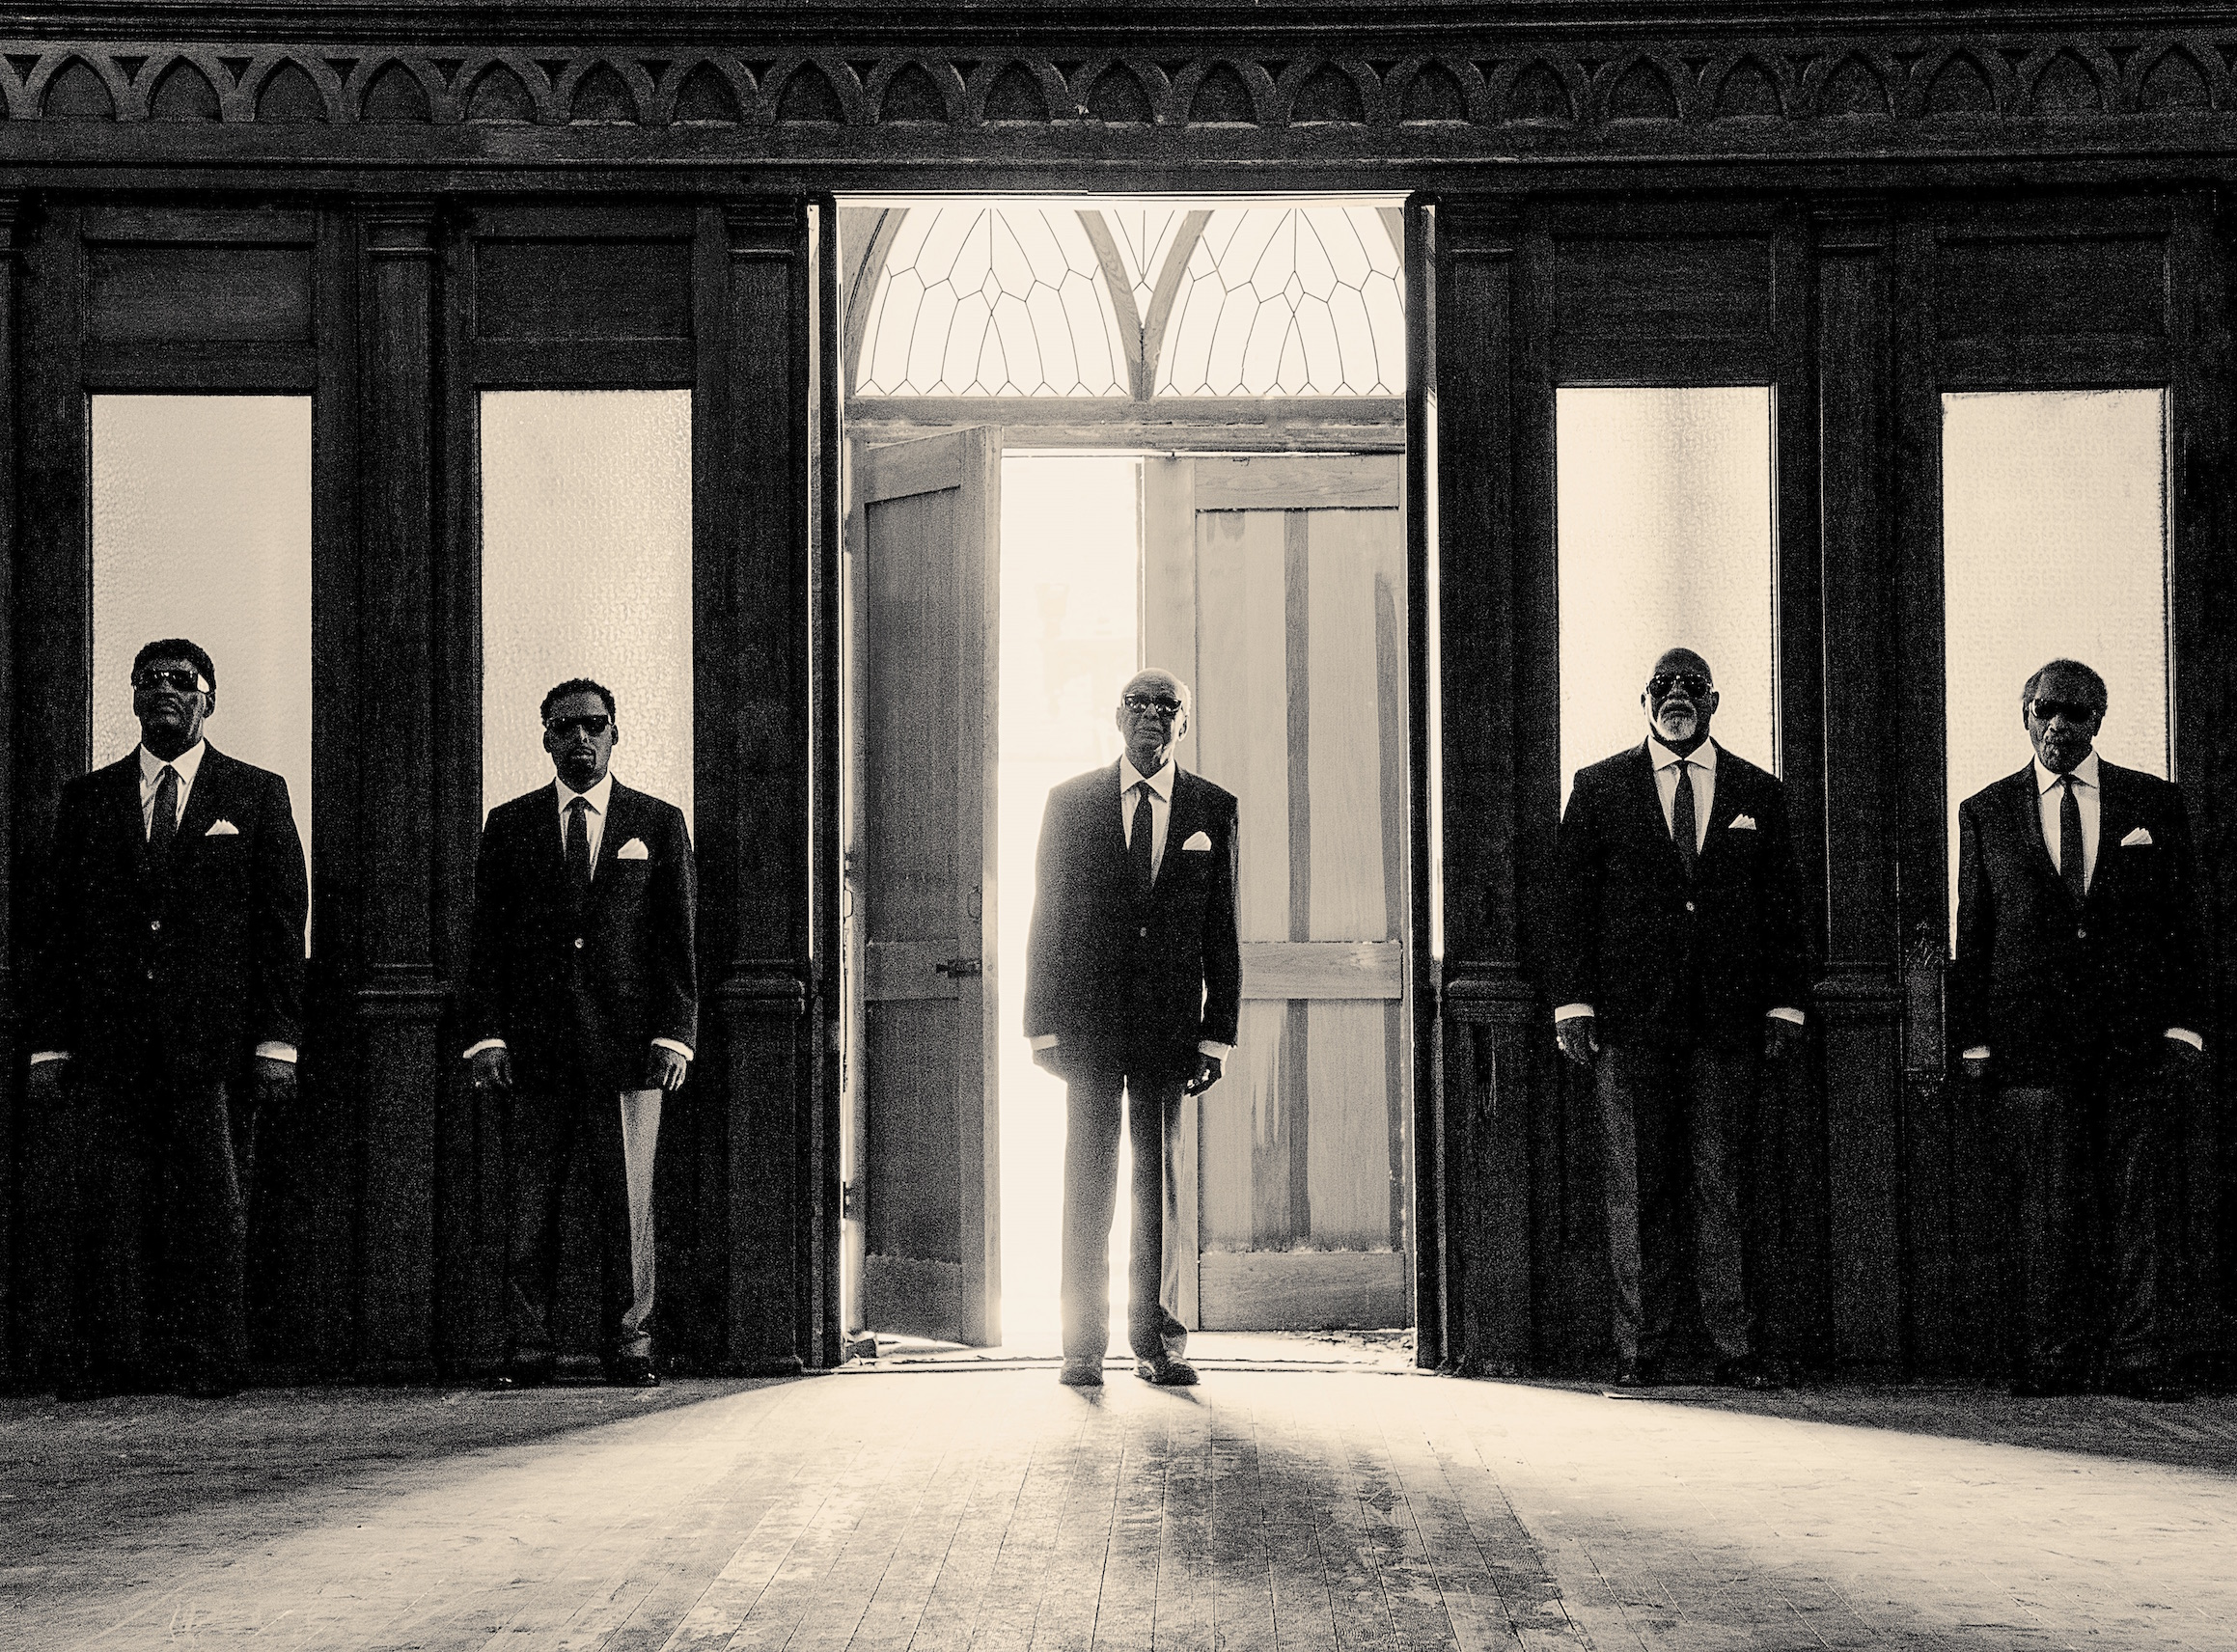 Counsel of Elders: Blind Boys of Alabama's Jimmy Carter on Singing from Your Spirit